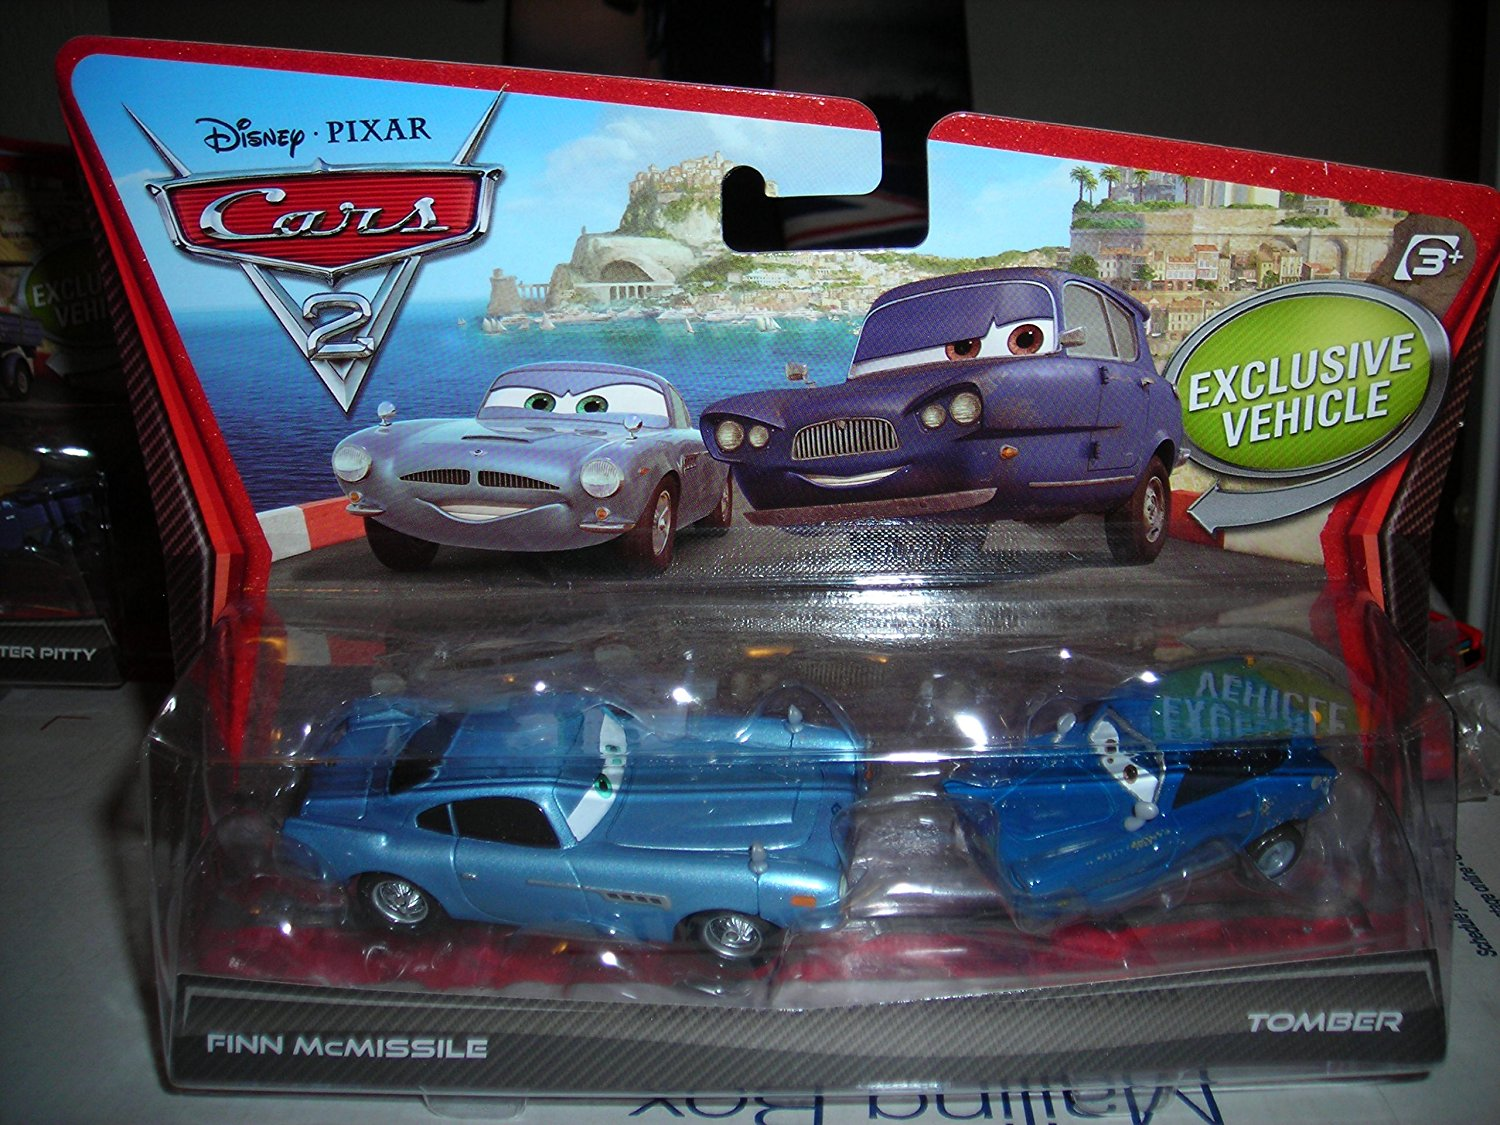 DISNEY PIXAR CARS 2 FINN MCMISSILE TOMBER 2 PACK EXCLUSIVE VEHICLE DIECAST VHTF NEW 1:55 SCALE MATTEL 2011